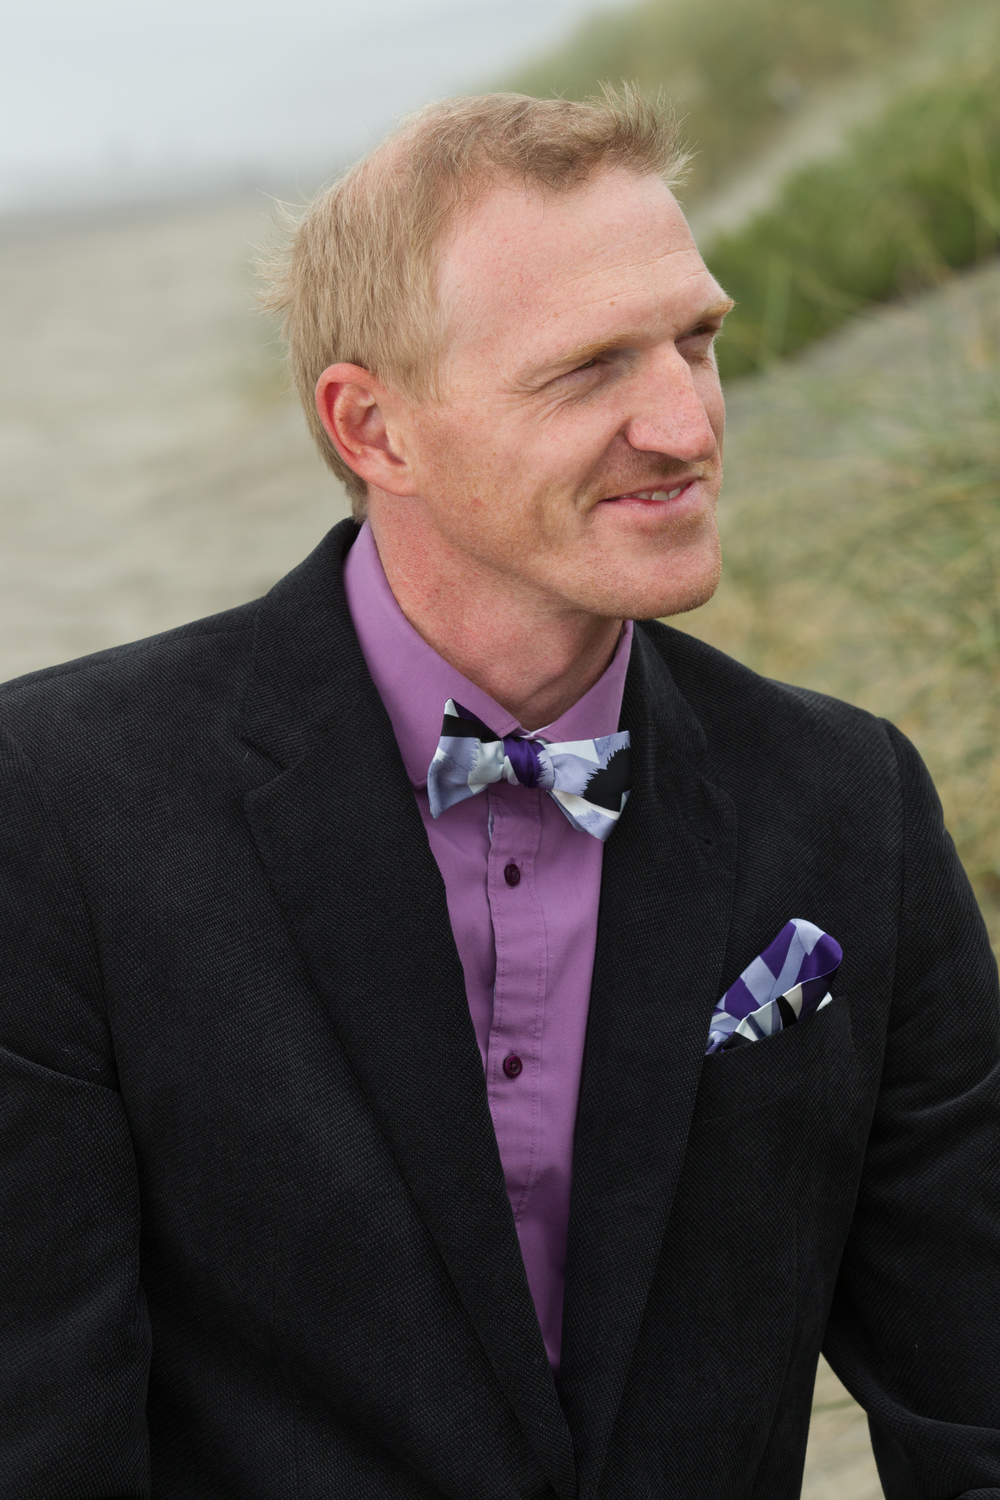 Italian silk bow tie to compliment a well traveled look